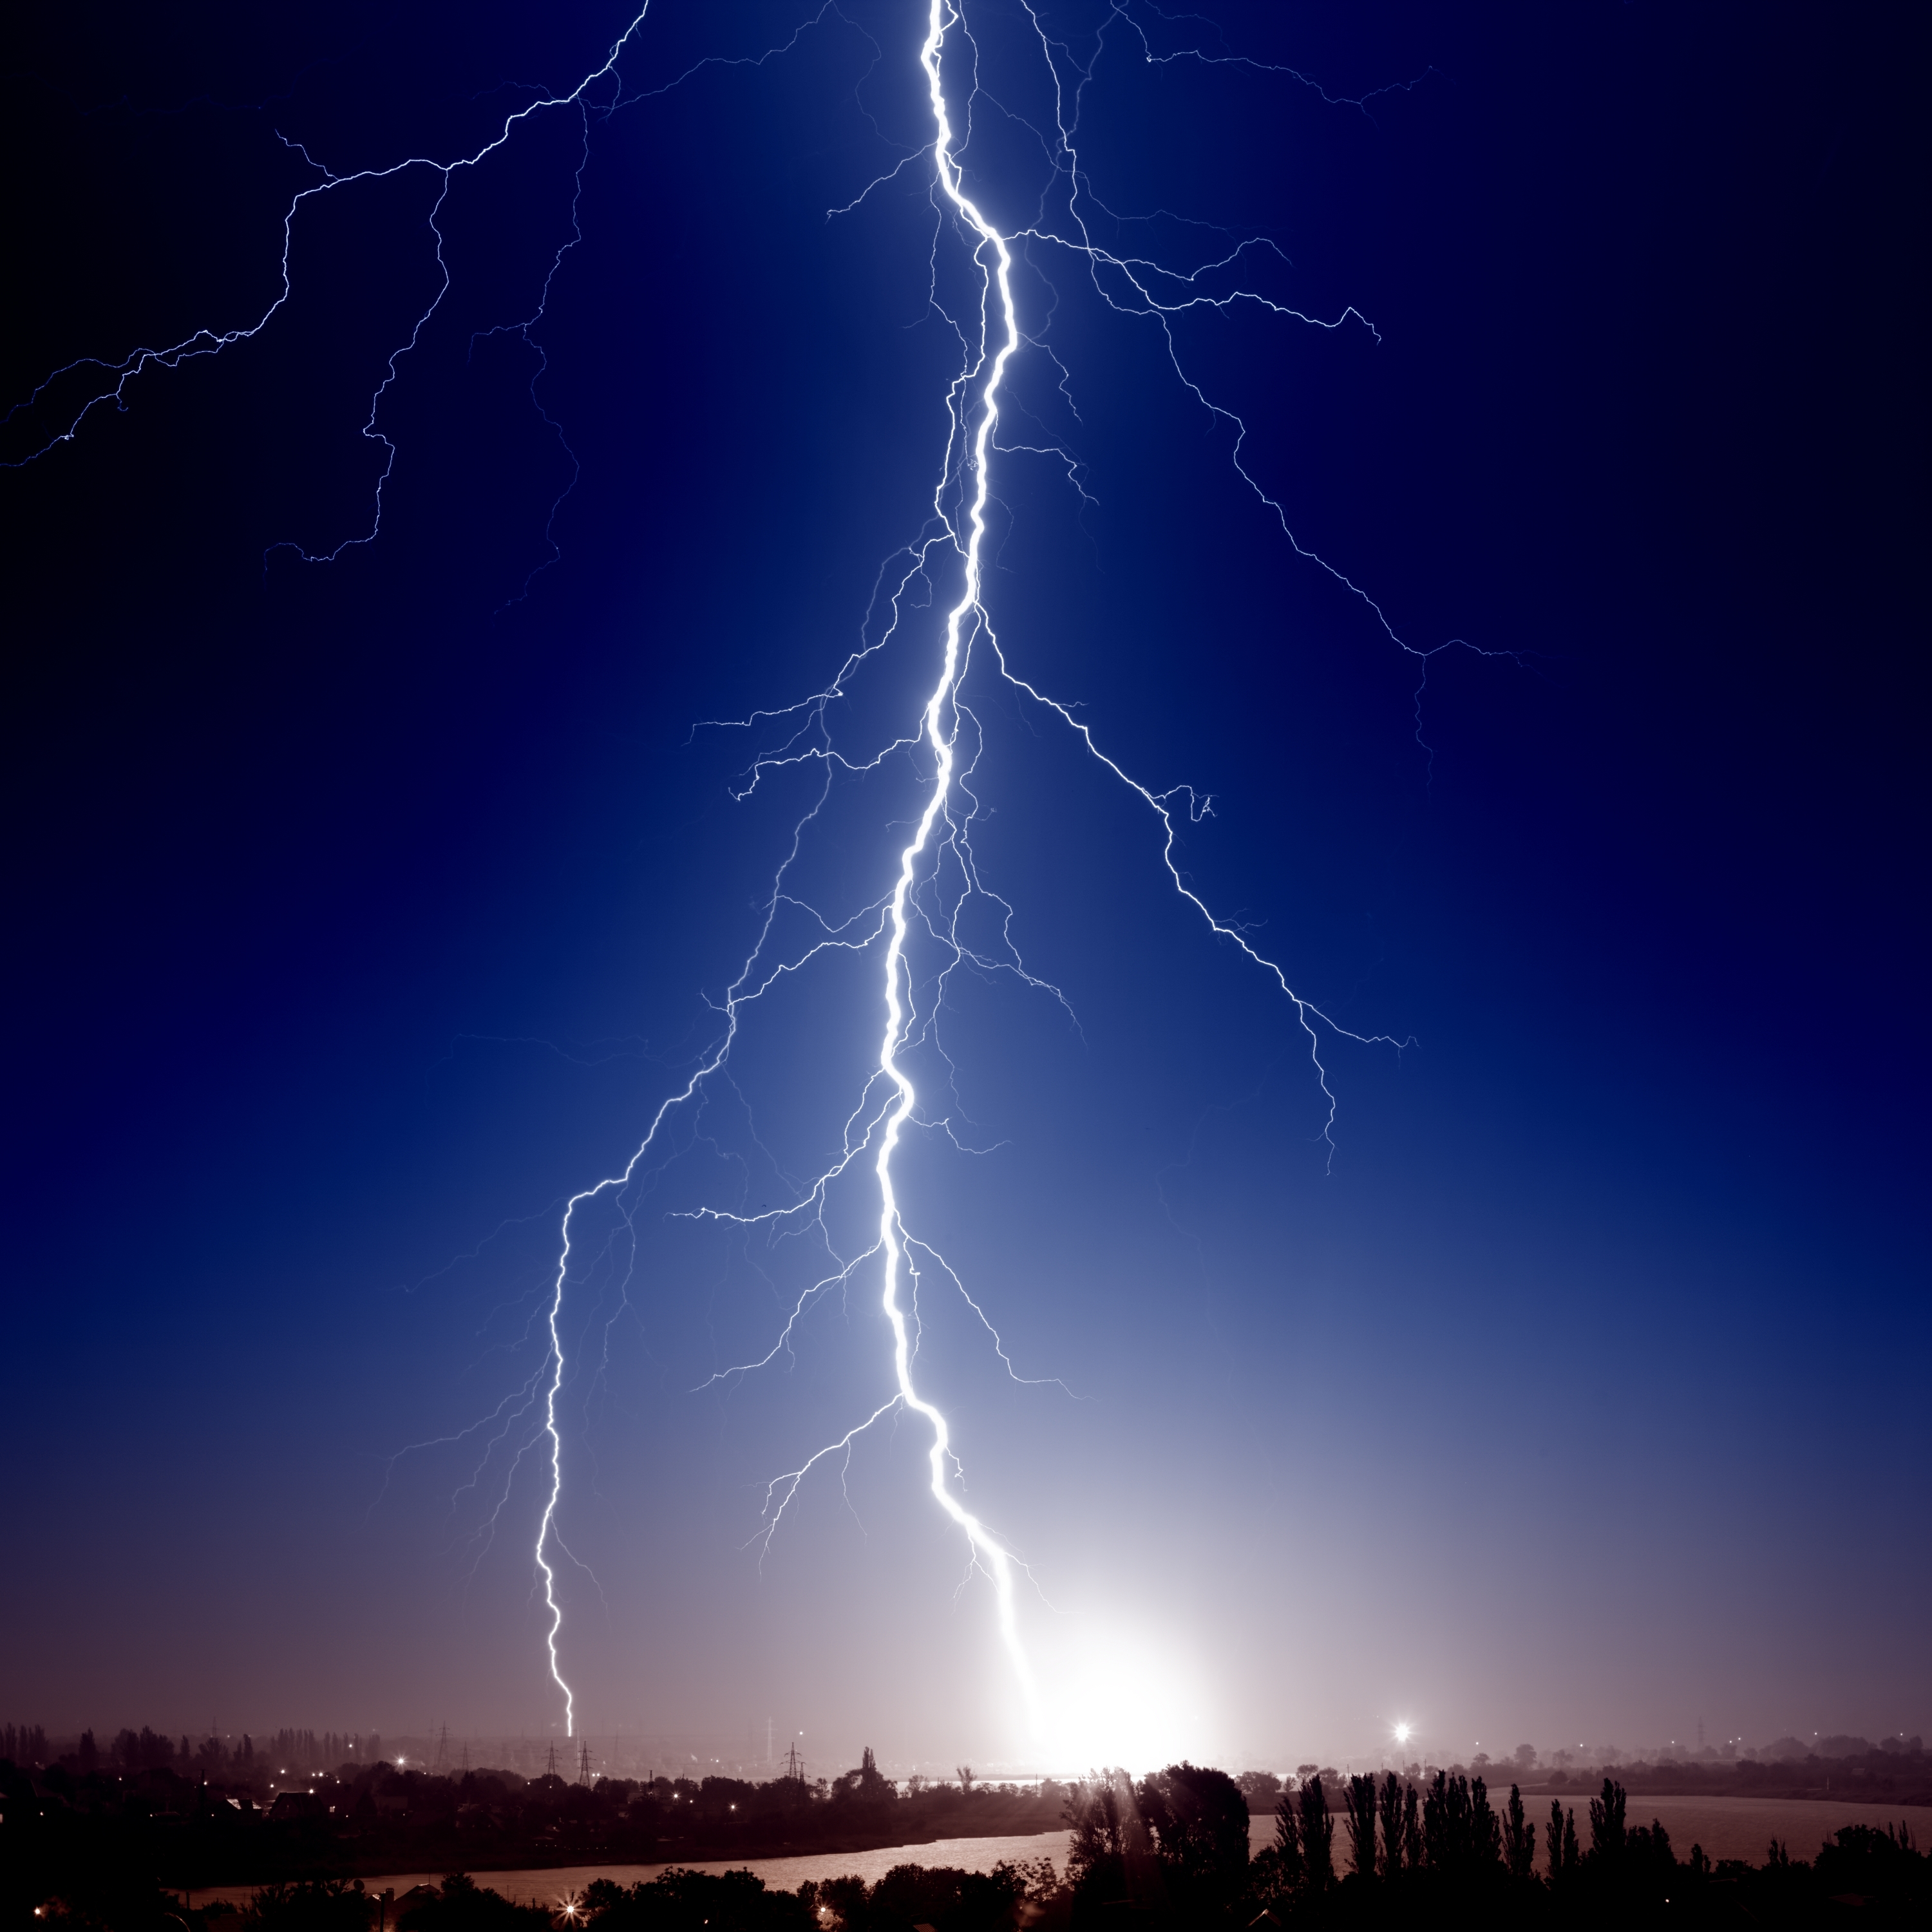 Homeowner Insurance Claim Severity Up 7% Due to Lightning ...